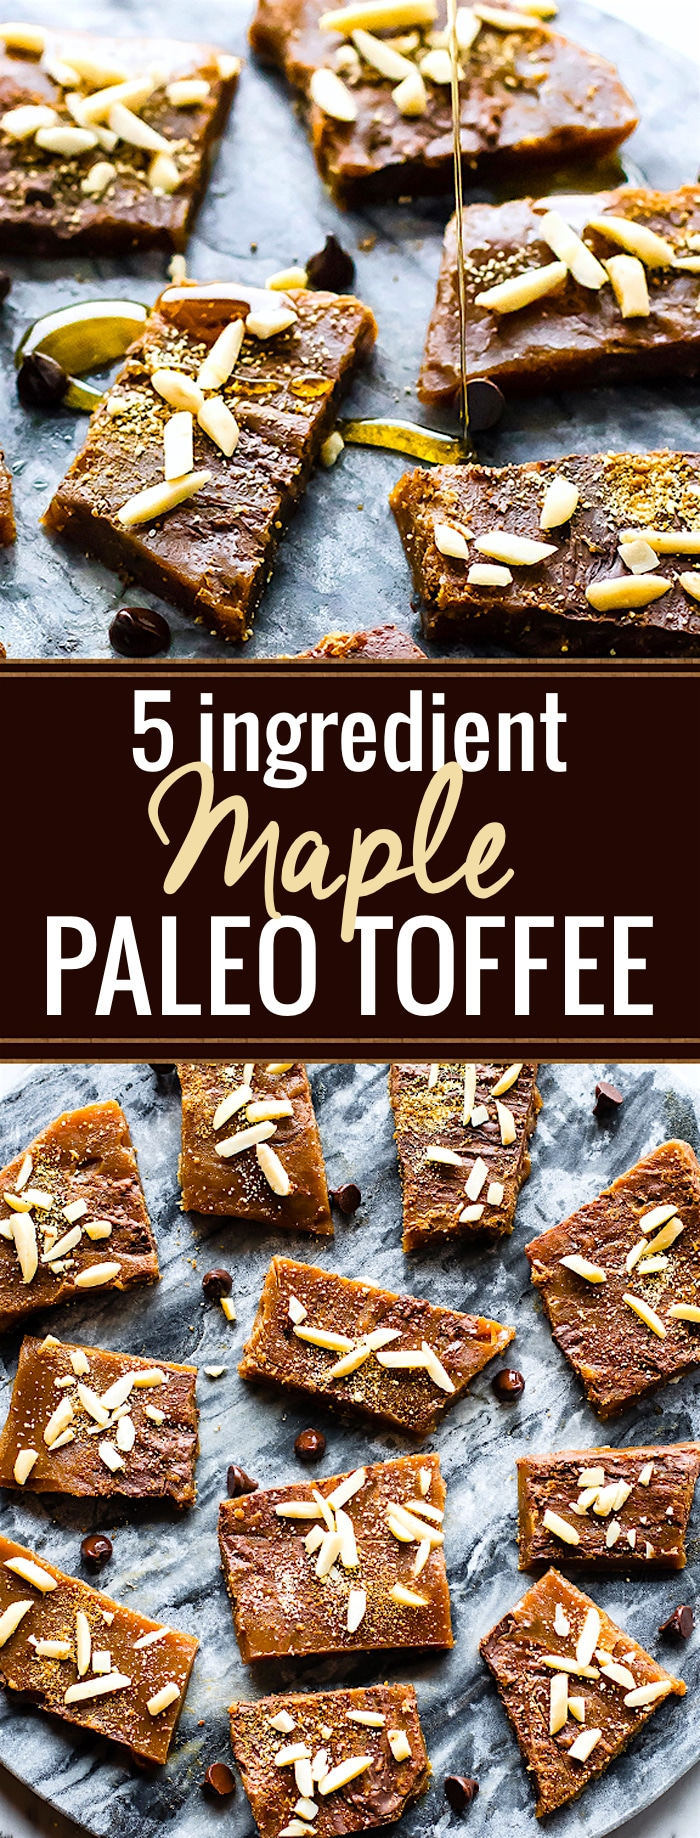 Paleo Toffee made with 5 ingredients plus your favorite topping! Real butter, maple syrup, dark chocolate, etc. Healthier Paleo Toffee that's easy to make! @cottercrunch